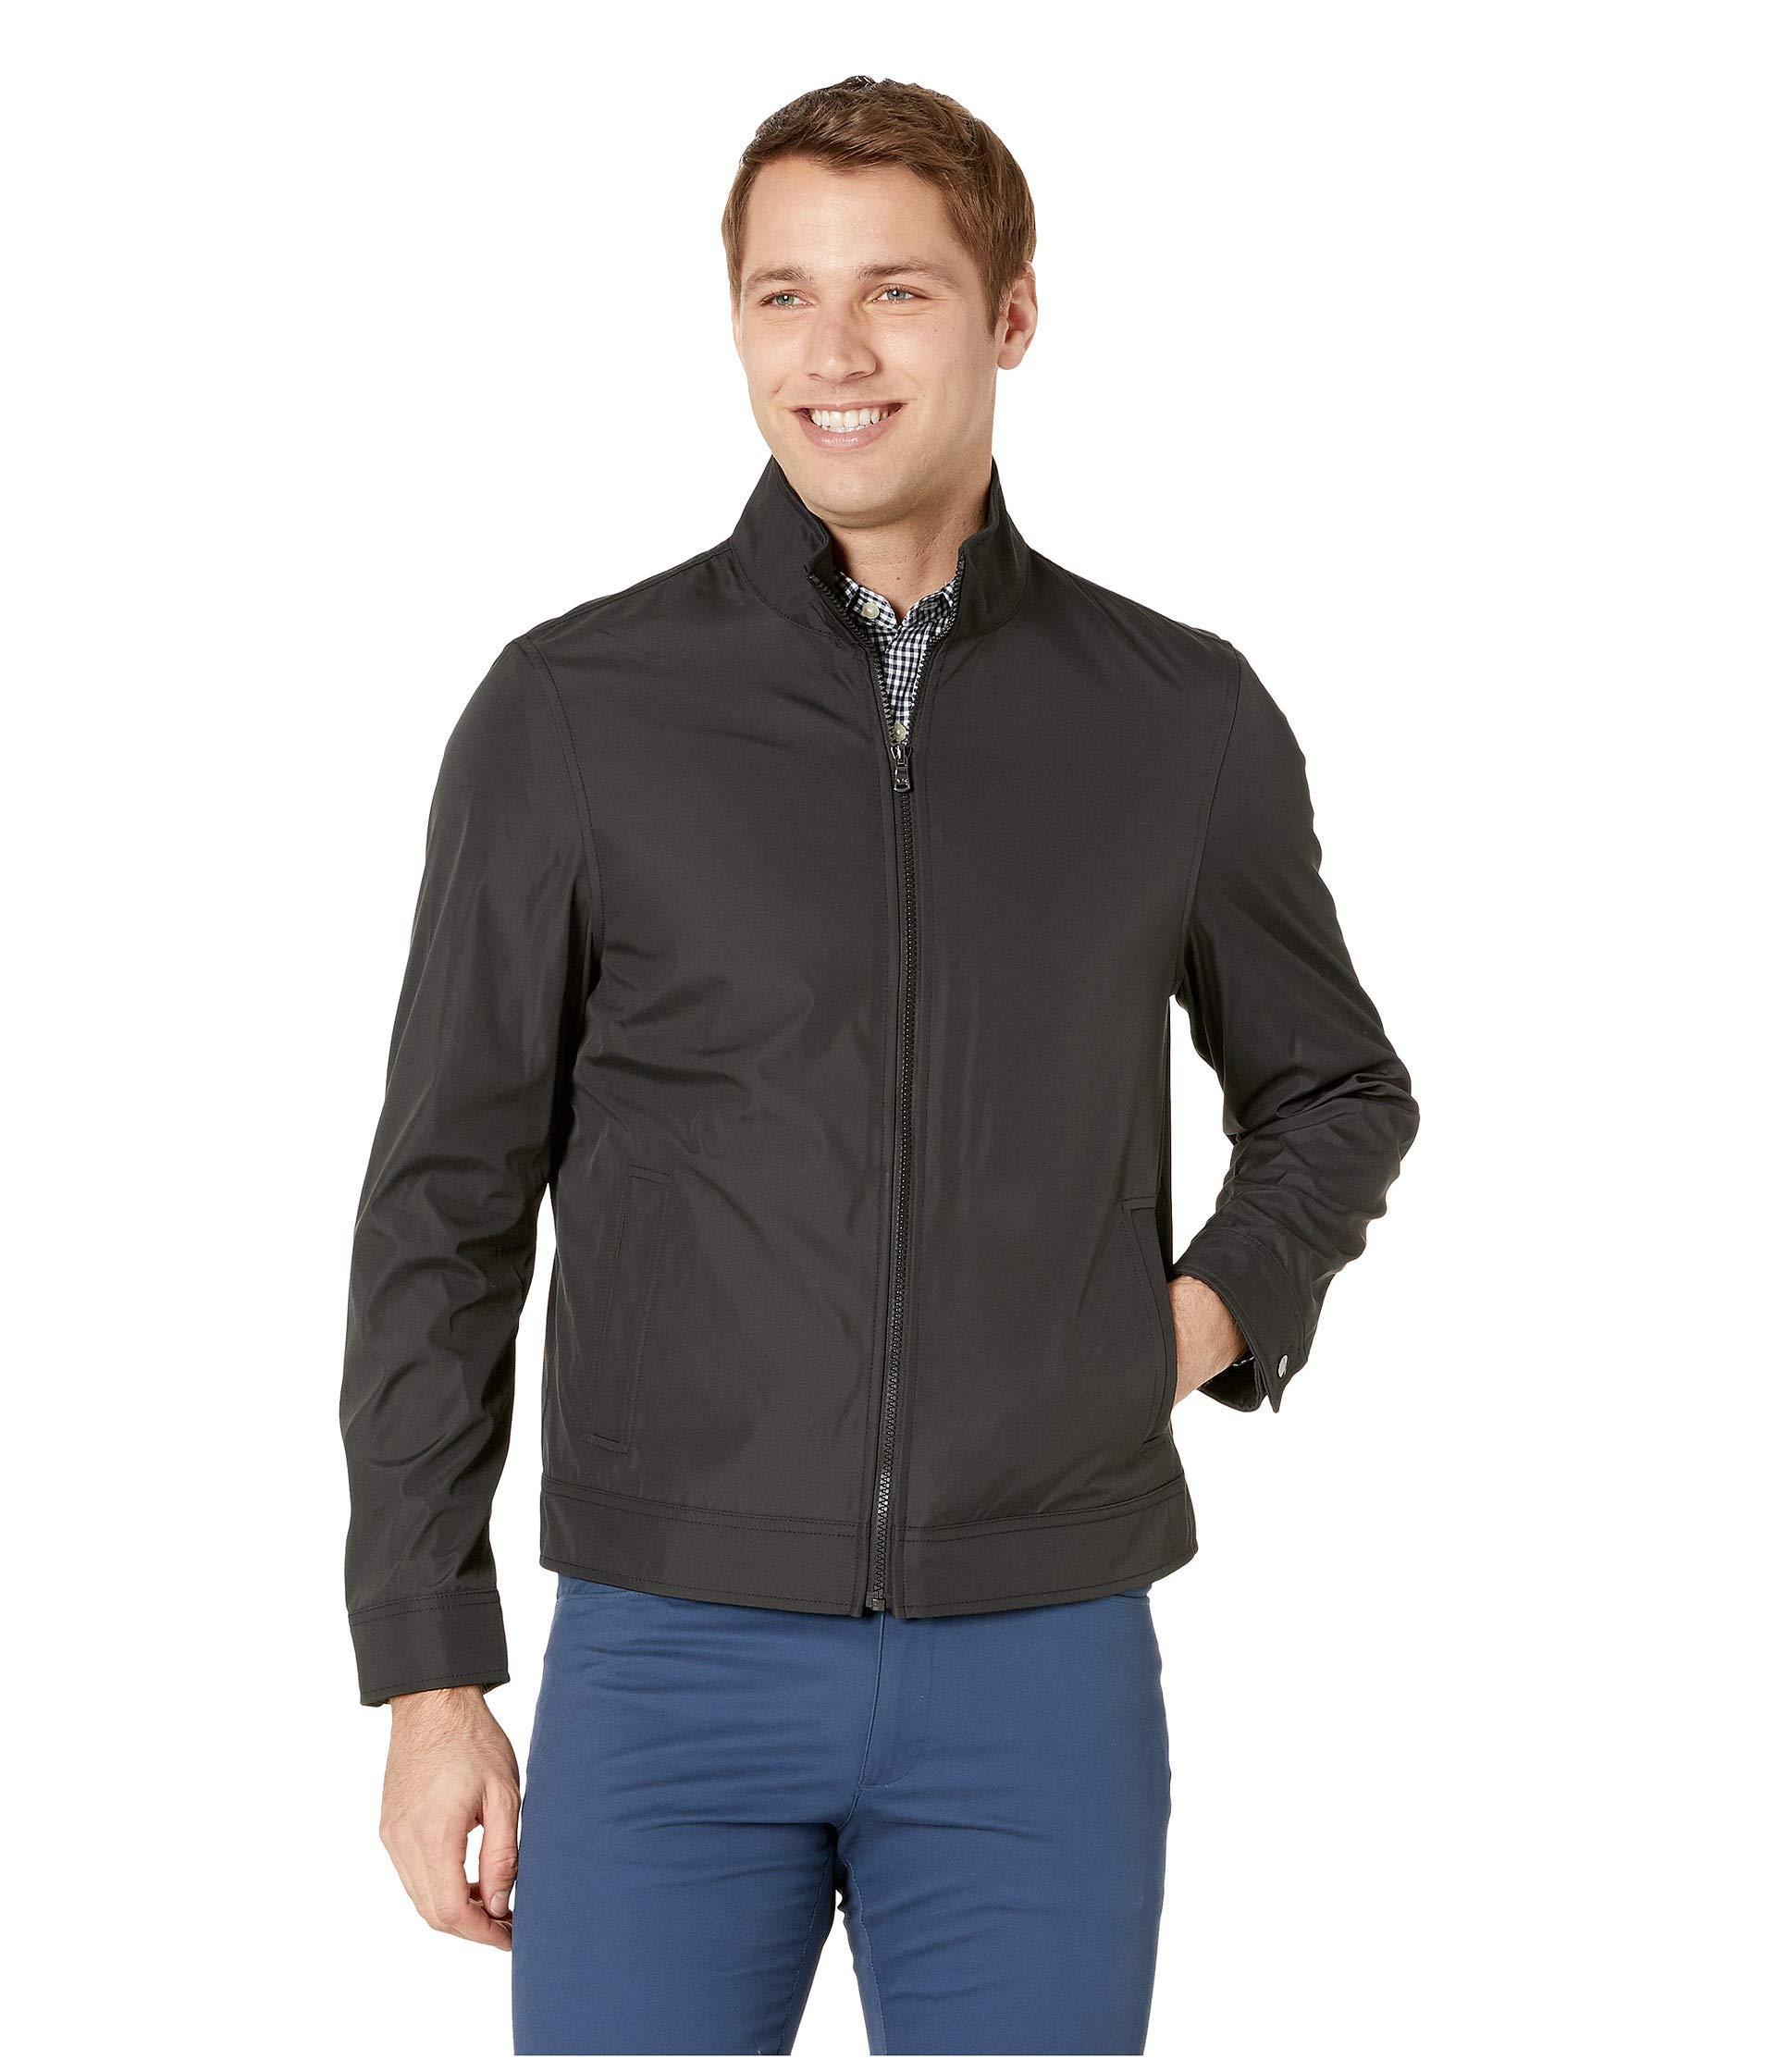 304e4c1b22a8 Lyst - Michael Kors 3-in-1 Tech Track Jacket in Black for Men - Save 2%